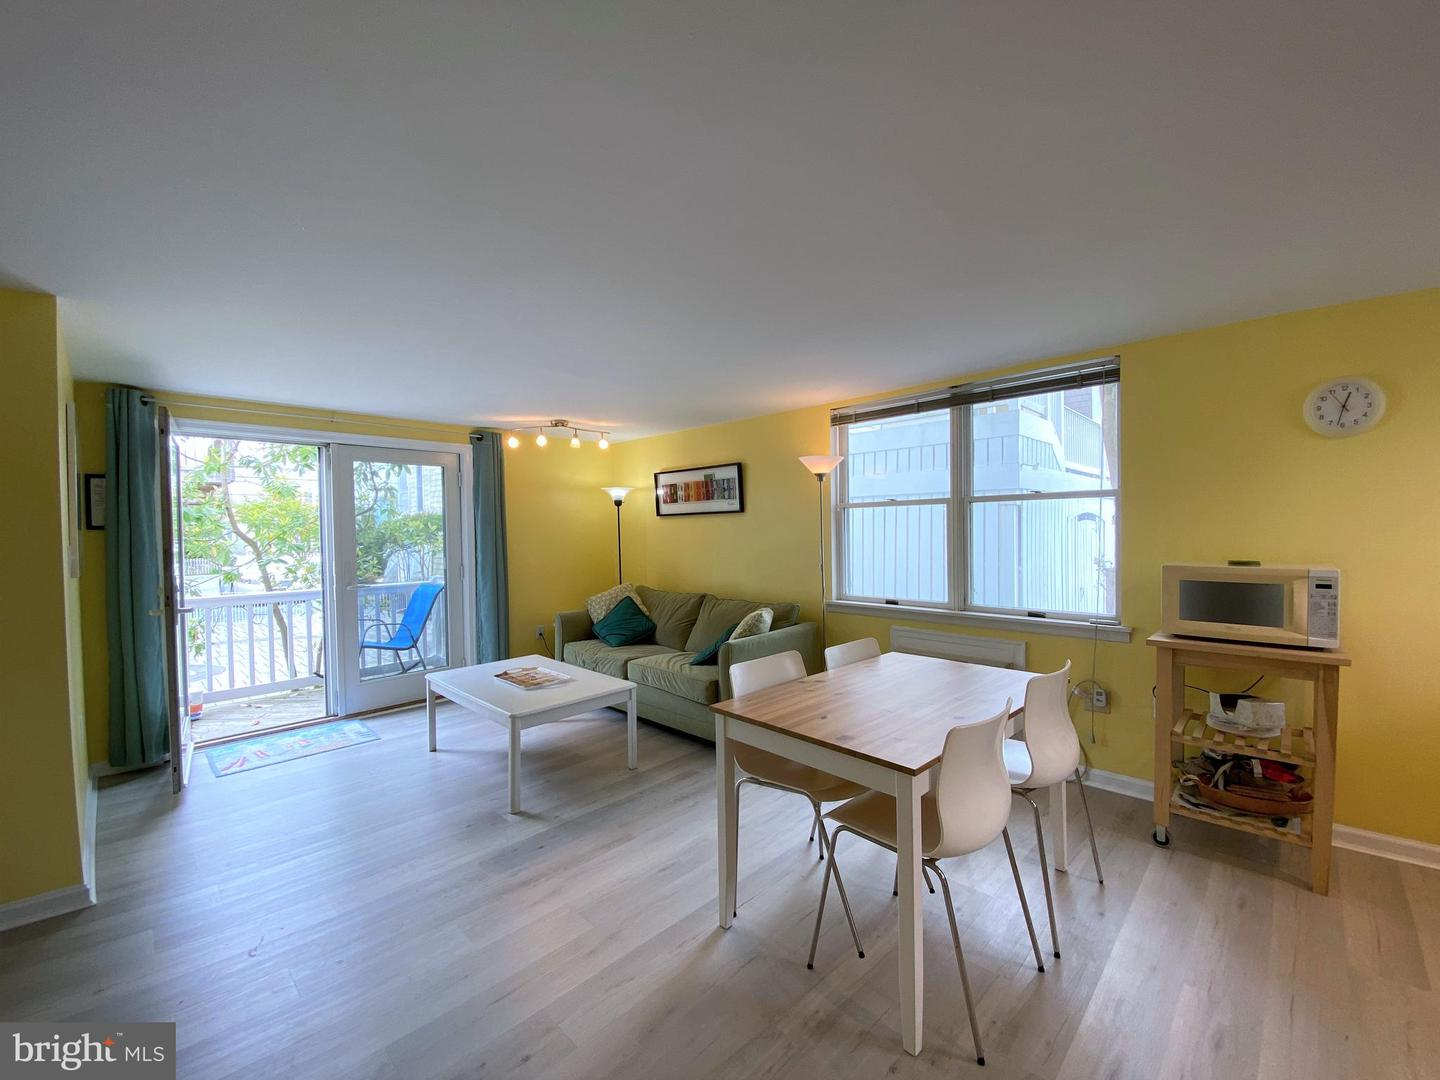 DESU161746-304145714997-2020-05-30-11-15-25 116 Hollywood St | Bethany Beach, DE Real Estate For Sale | MLS# Desu161746  - Ocean Atlantic